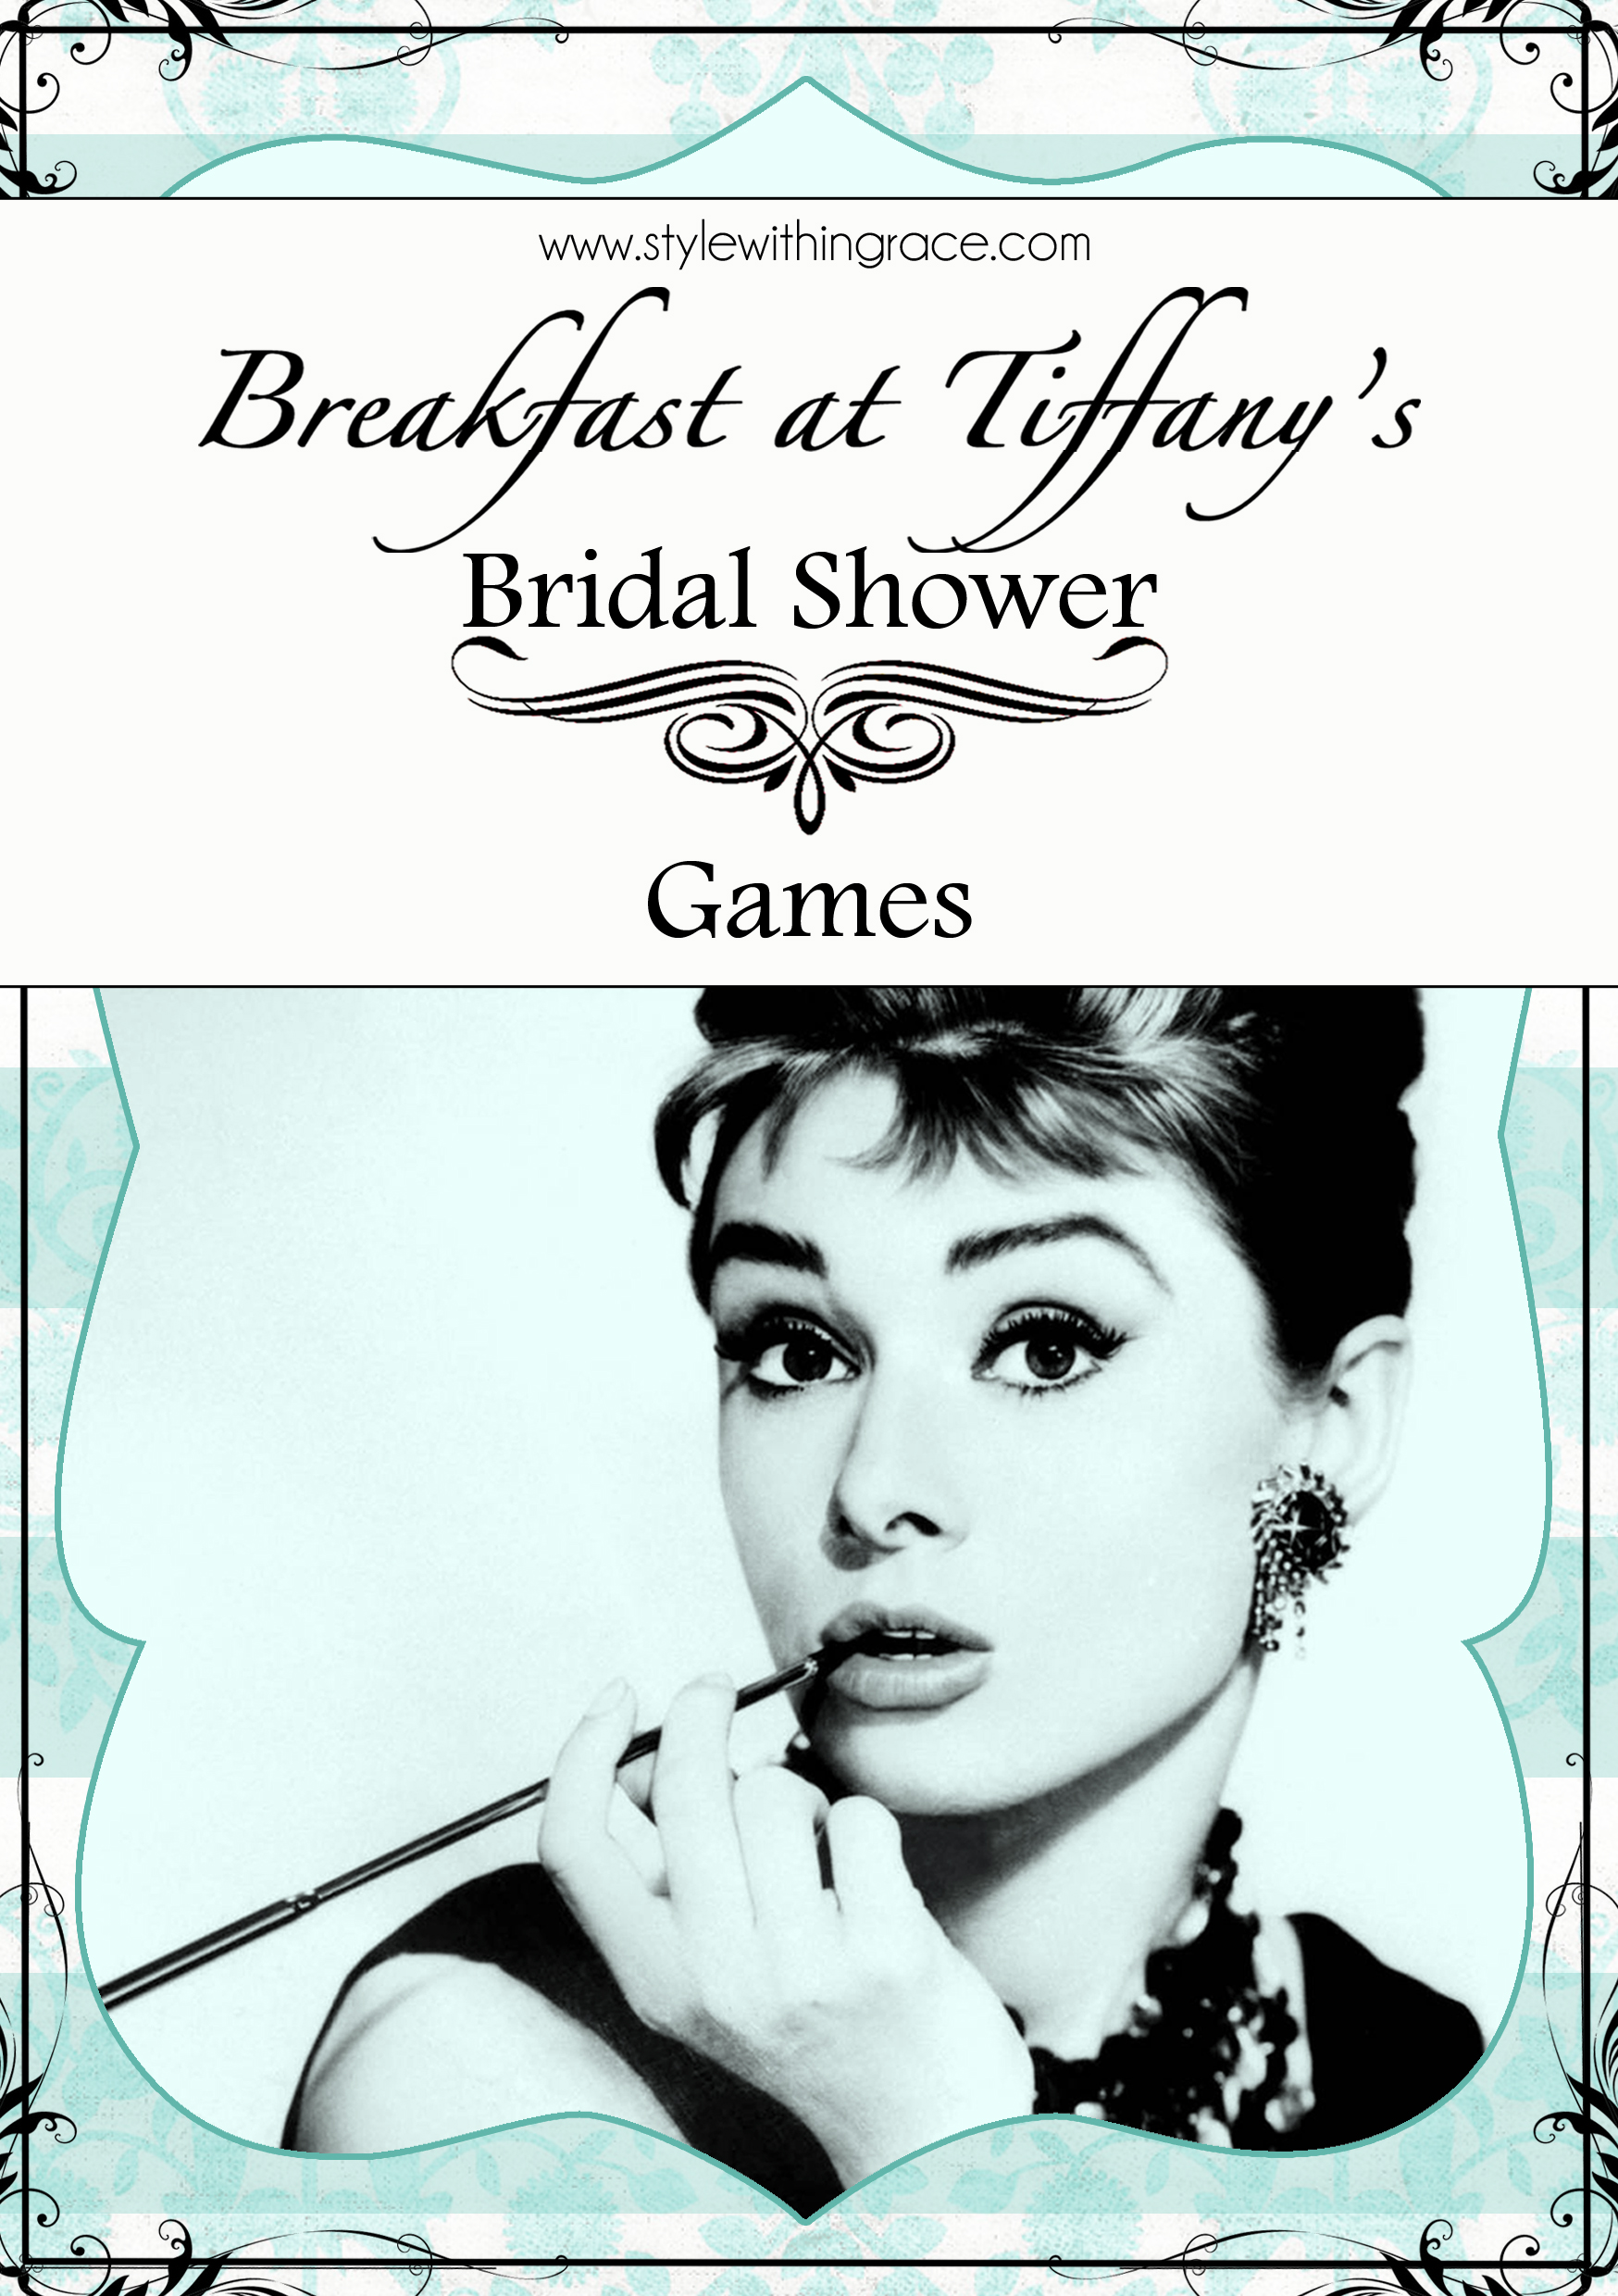 Classy yet affordable DIY bridal shower or hens night games themed around the movie Breakfast at Tiffany's. Free easy to use customizable printable templates.